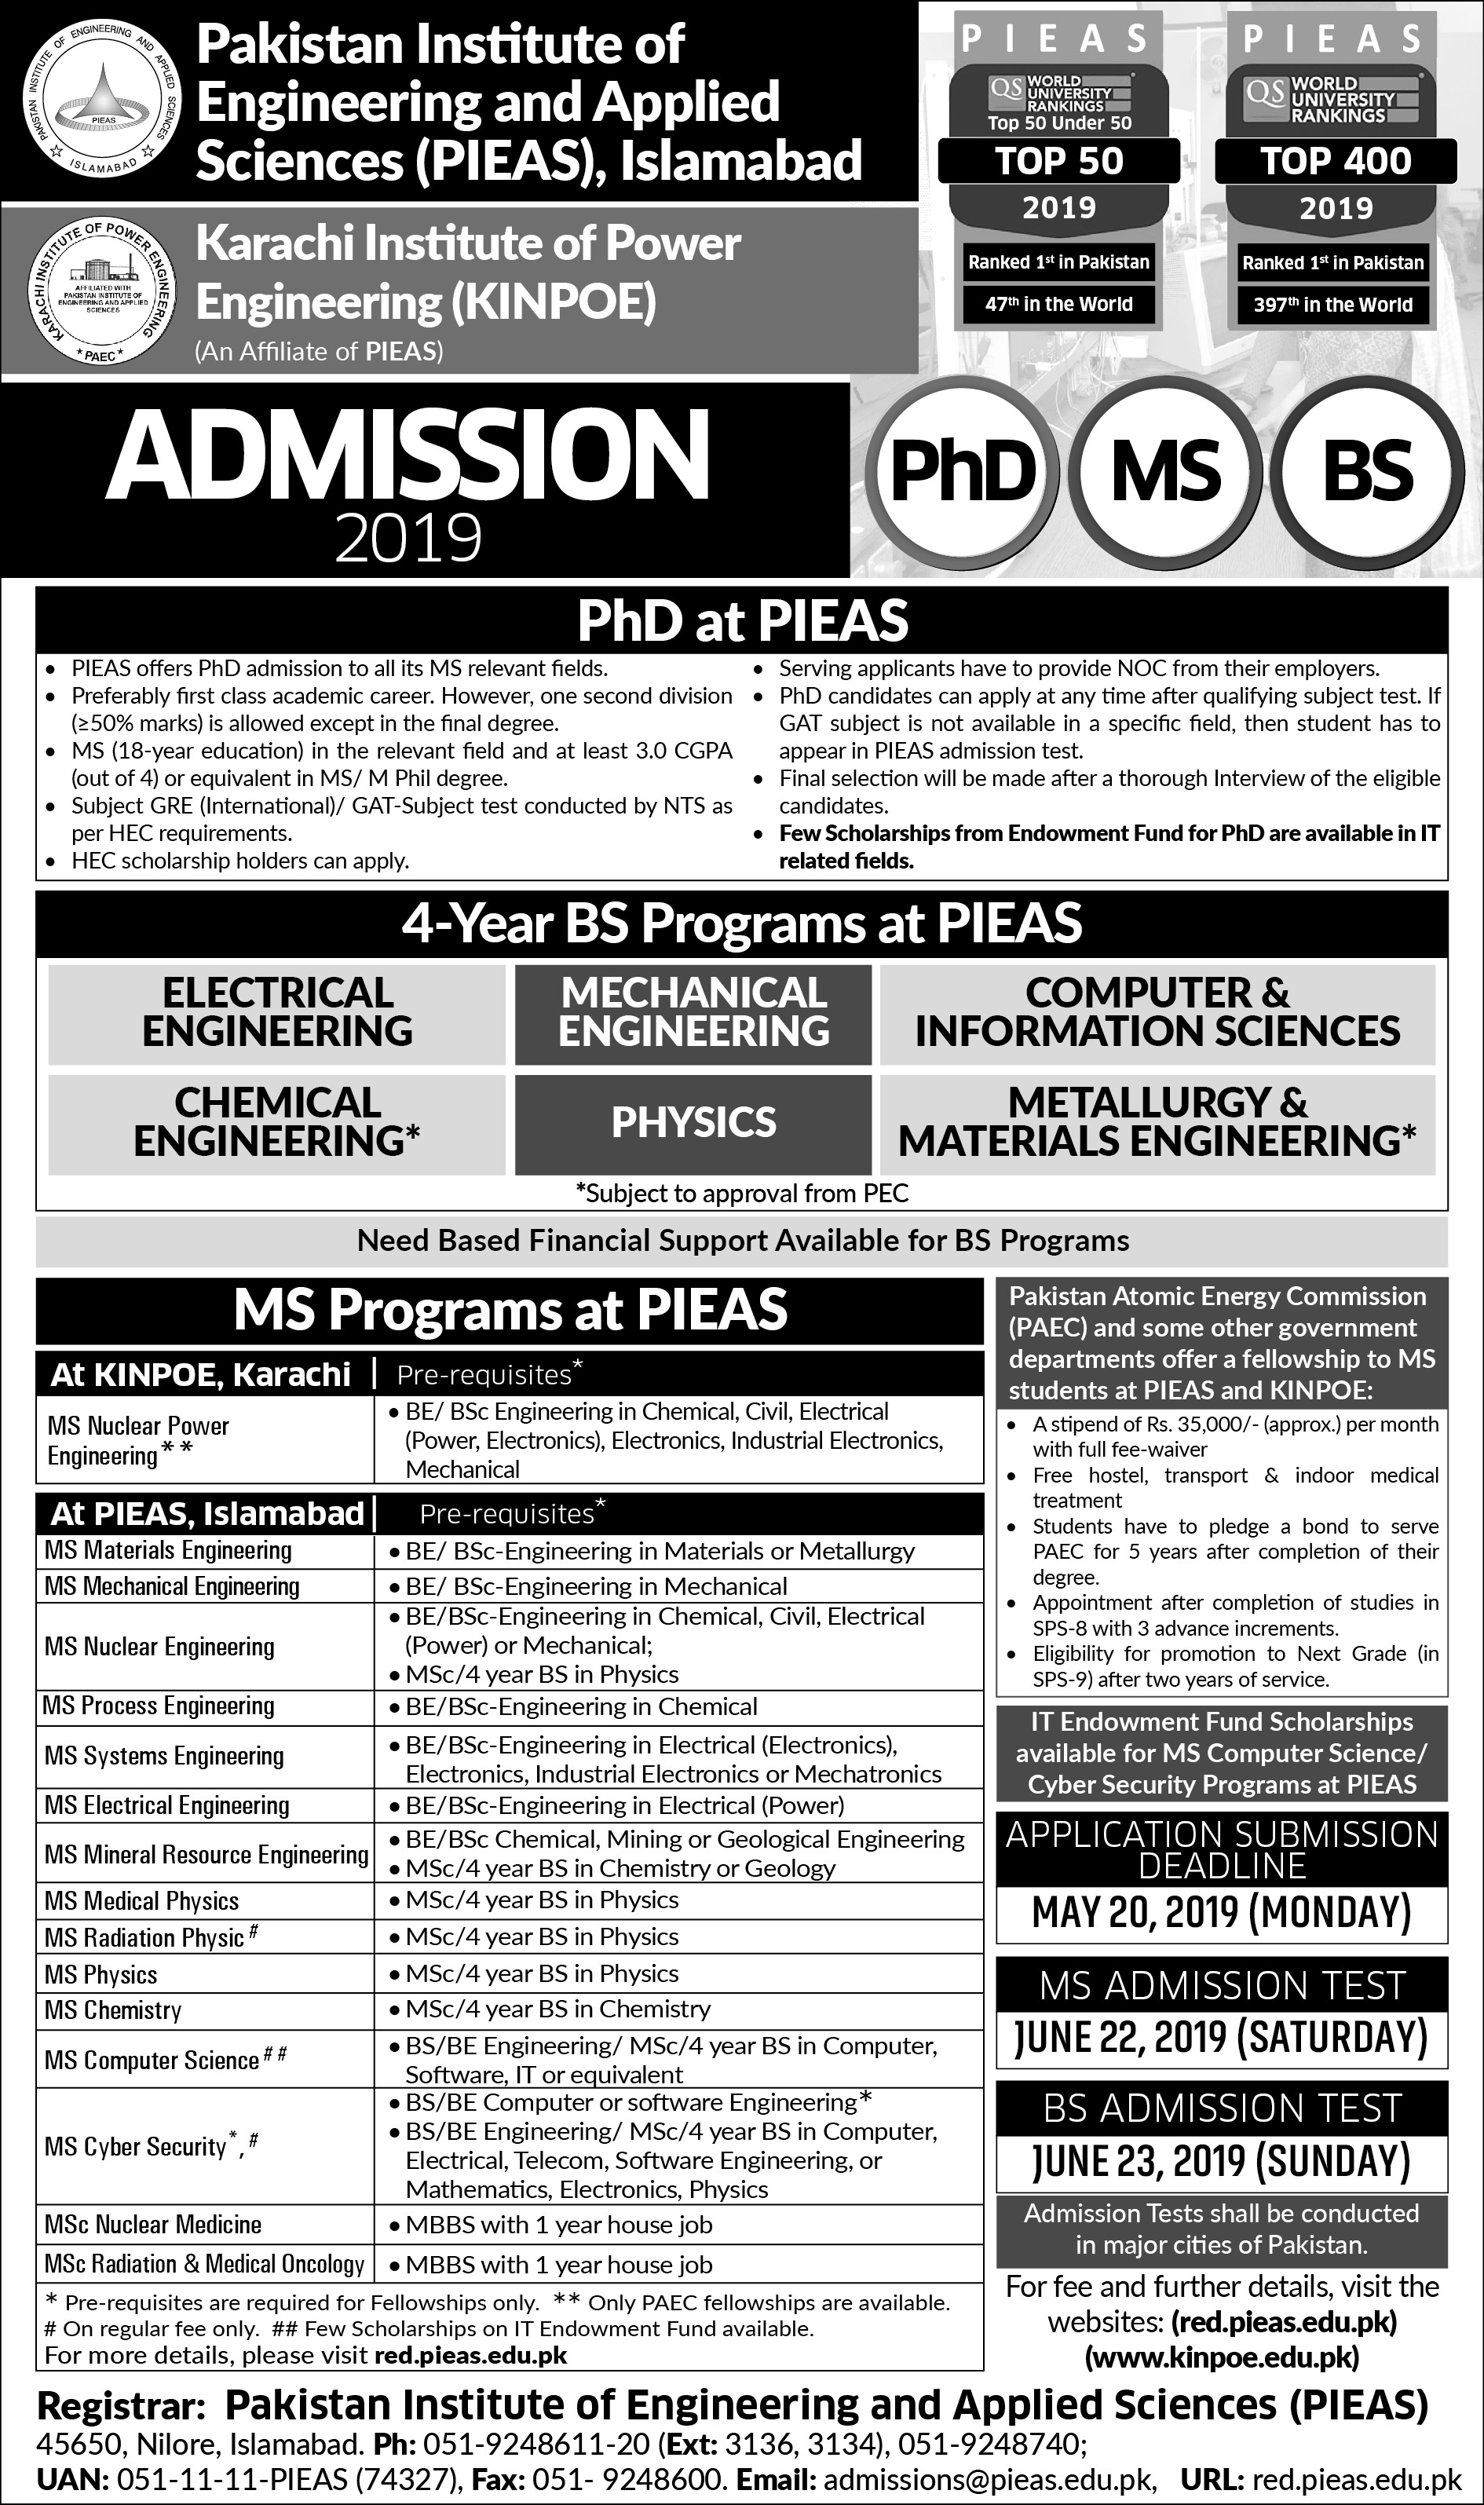 PIEAS Islamabad Admission Advertisement 2019